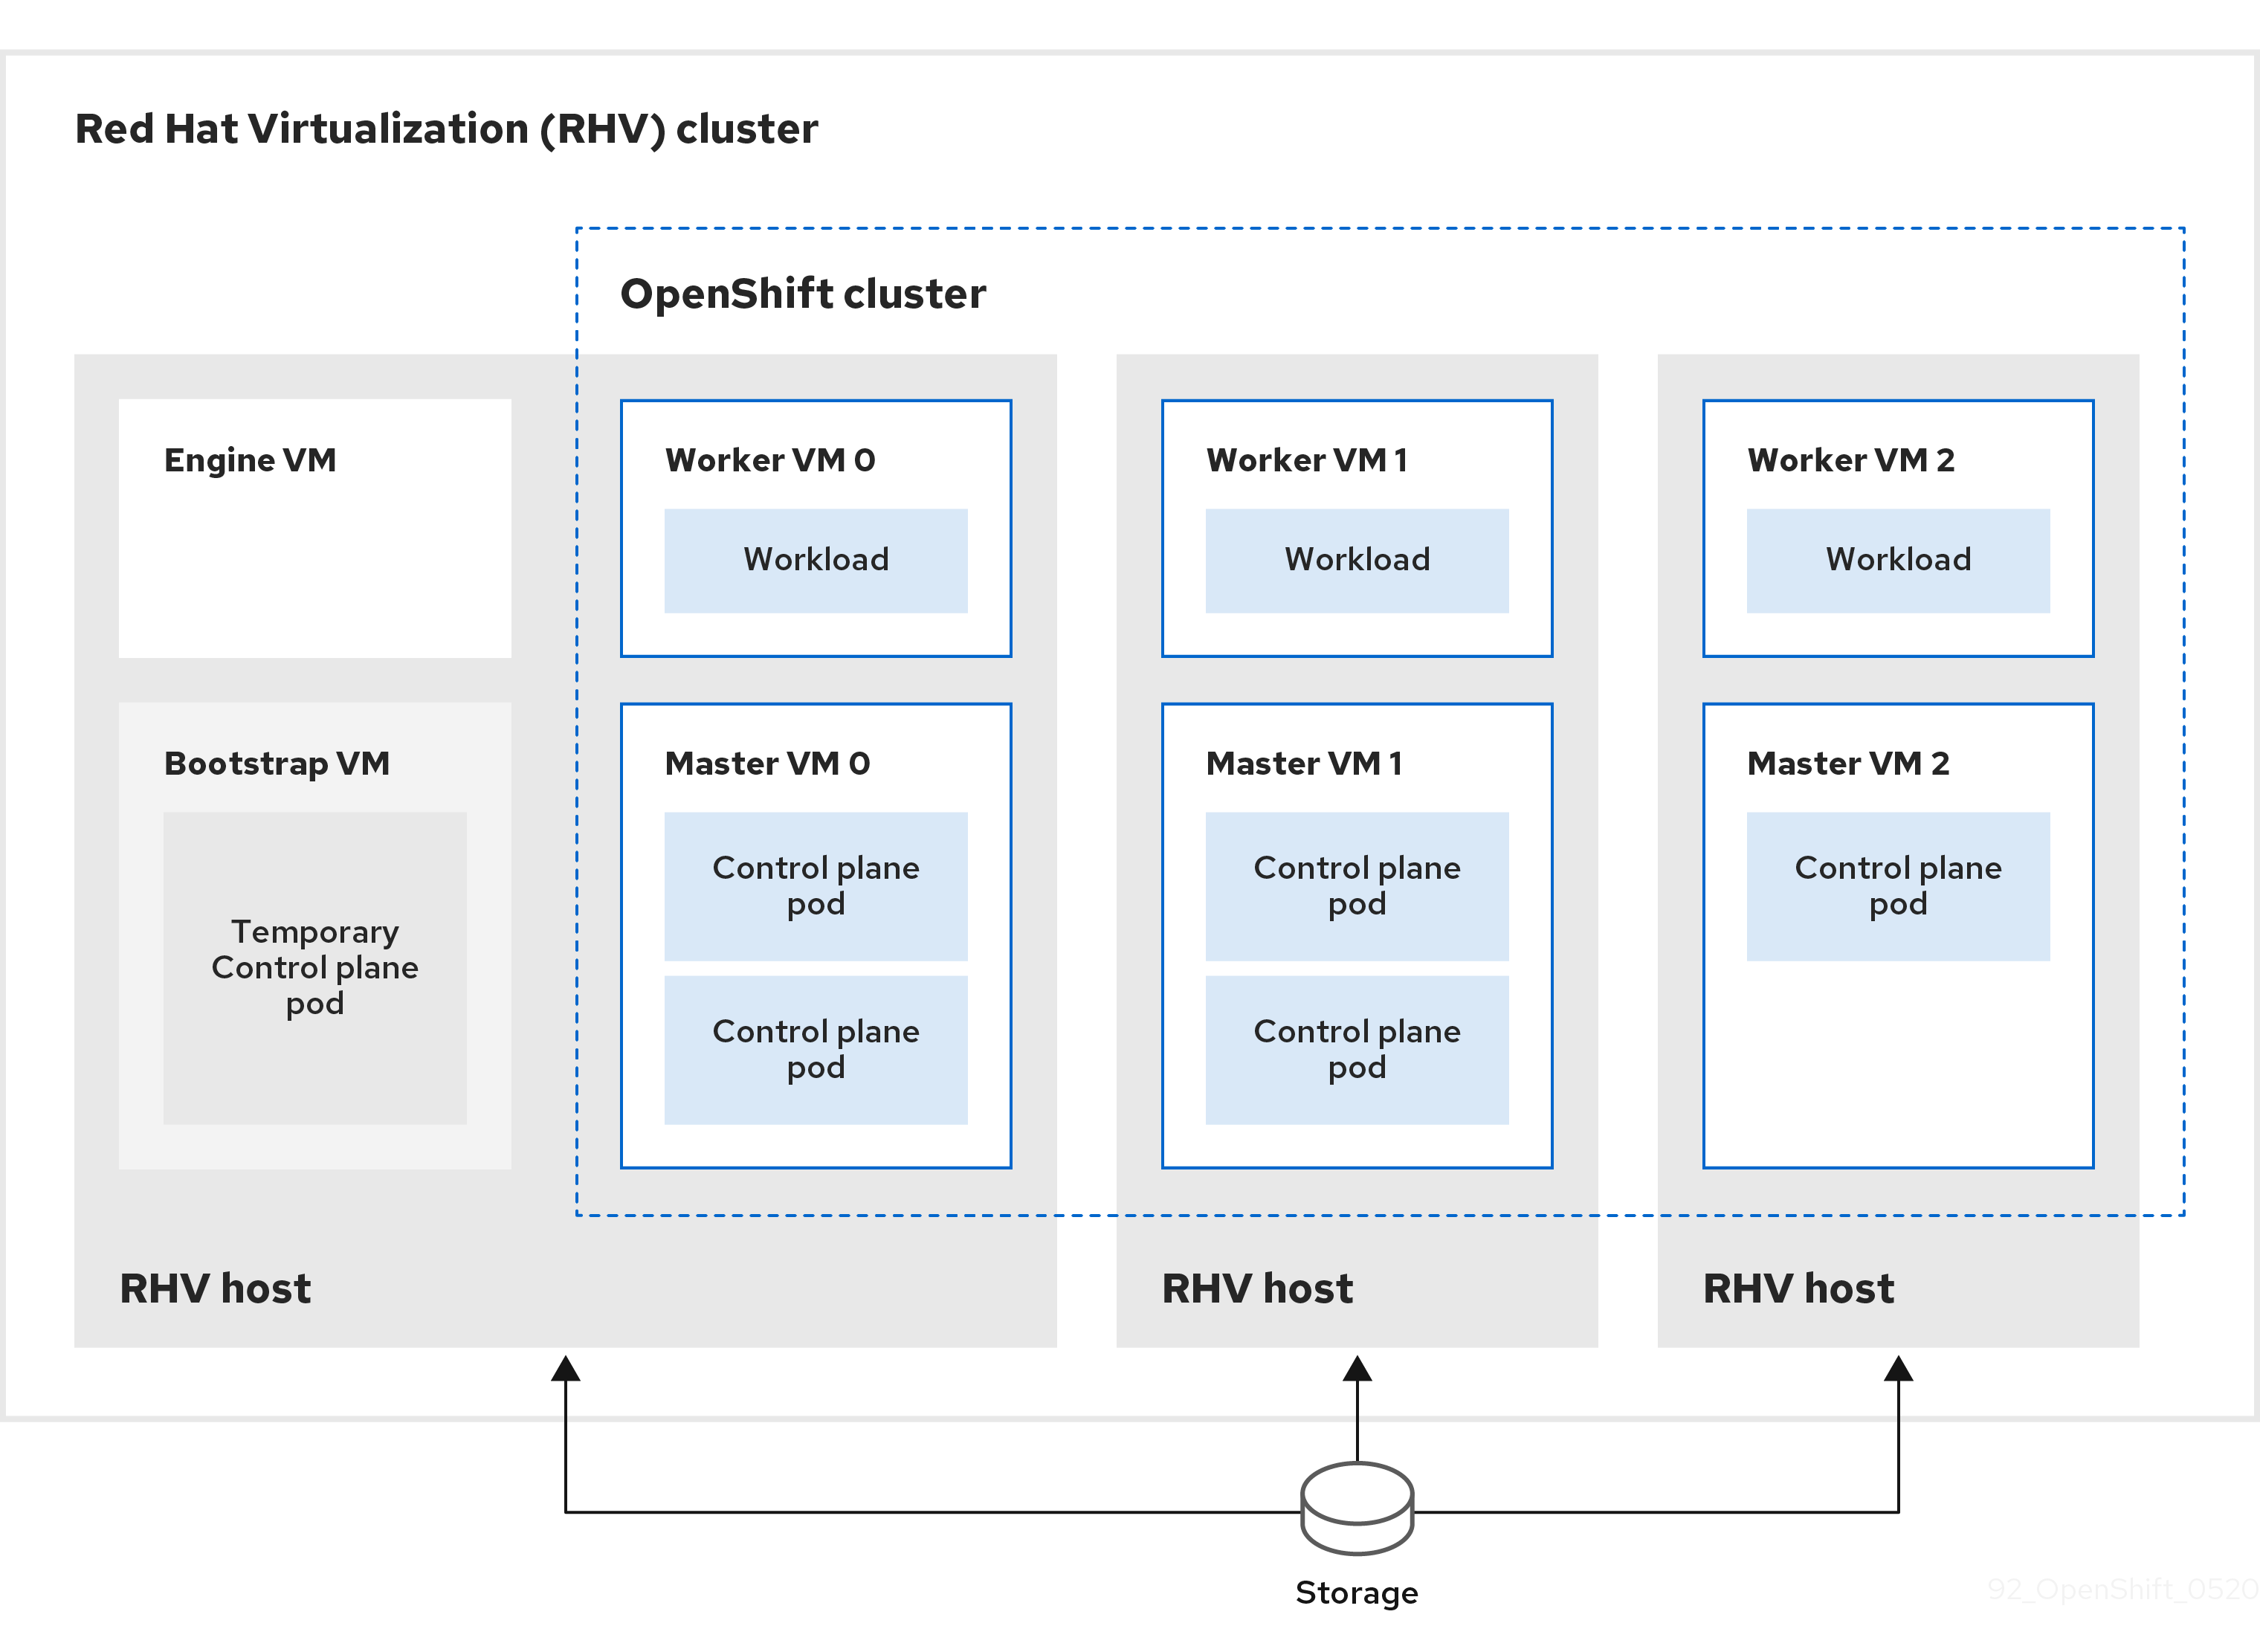 Diagram of an OpenShift Container Platform cluster on a RHV cluster